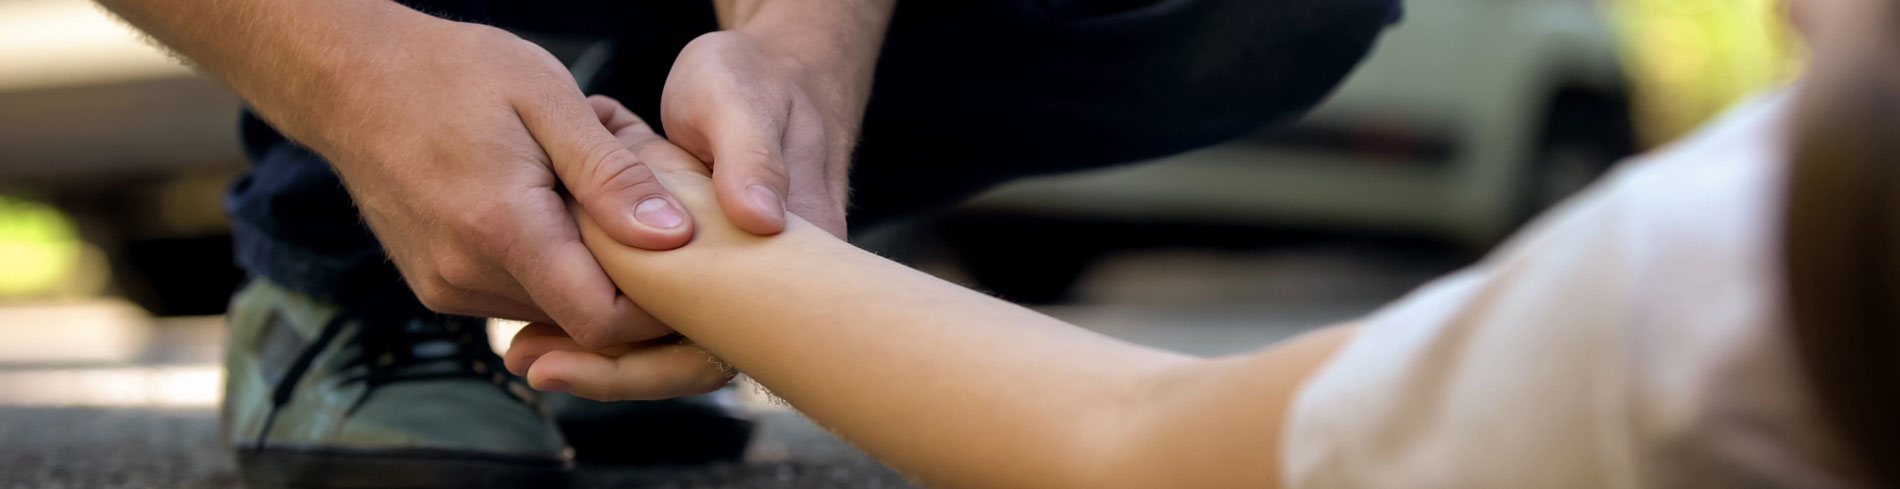 A man is checking a woman's pulse to make sure she is okay after an attack. If you're a victim we can help you.